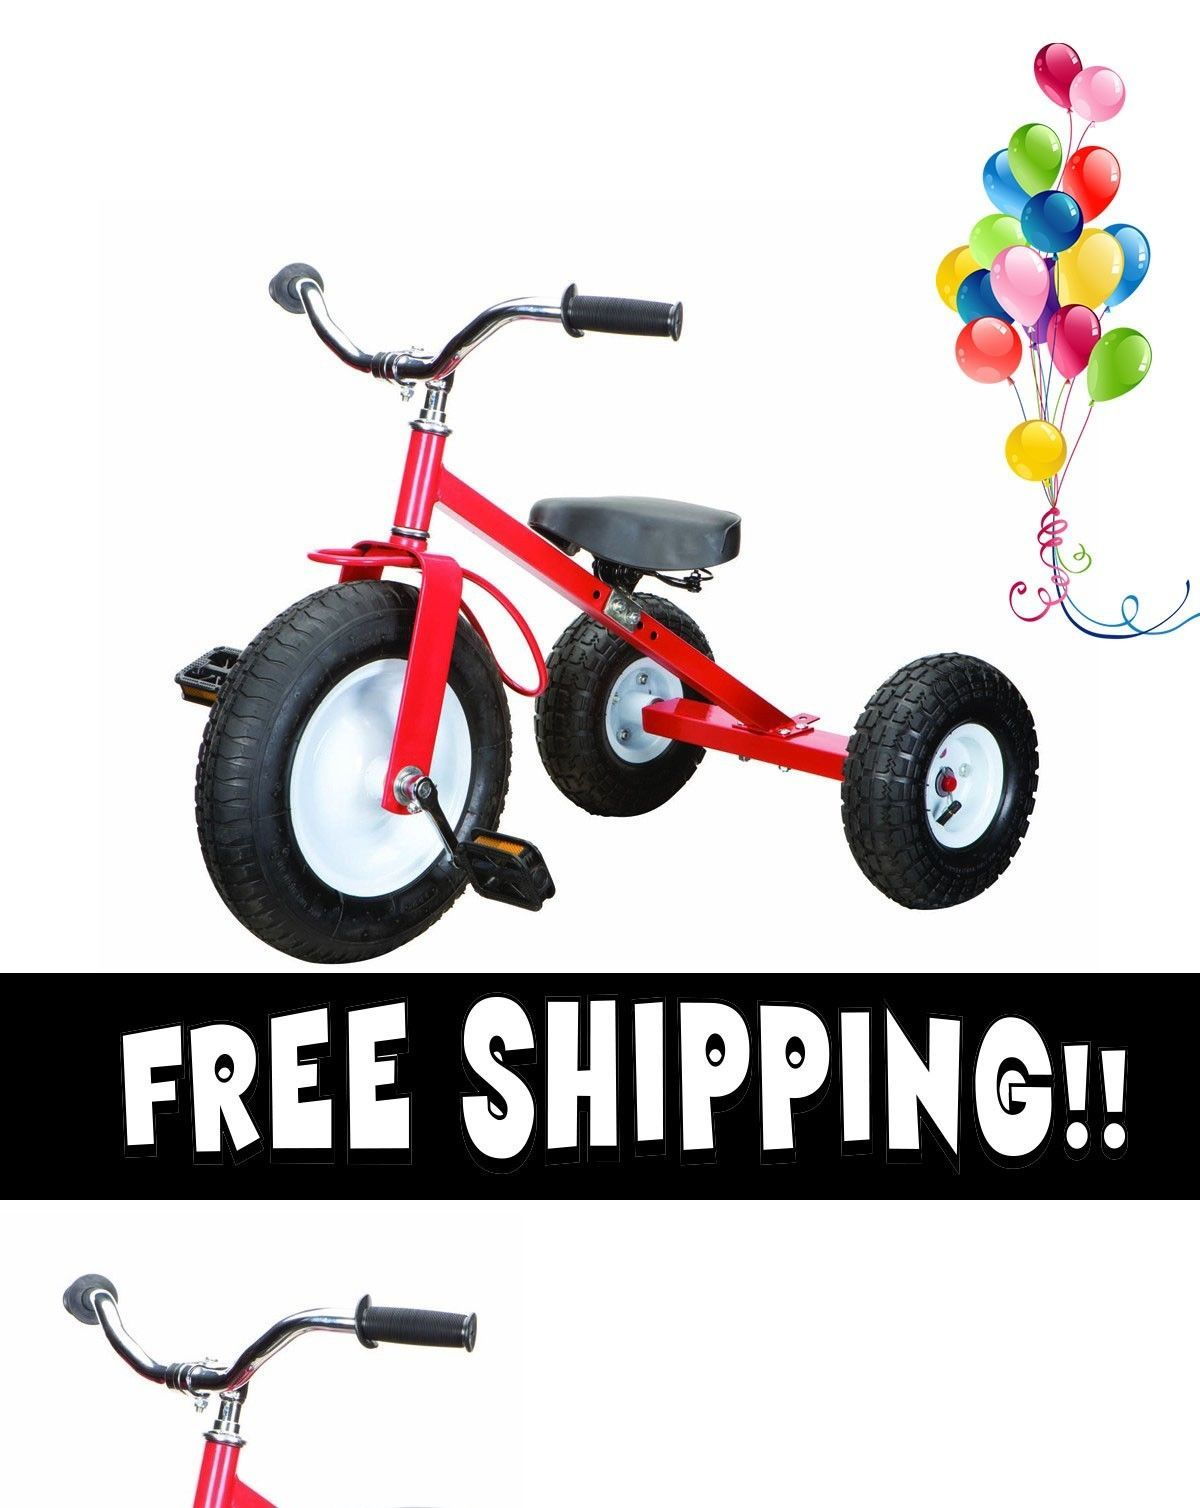 26ddebac788 Ride-Ons and Tricycles 19023: All-Terrain Tricycle For Children Trike  Daycare Preschool Toddler Kids Heavyduty -> BUY IT NOW ONLY: $64.99 on  #eBay ...